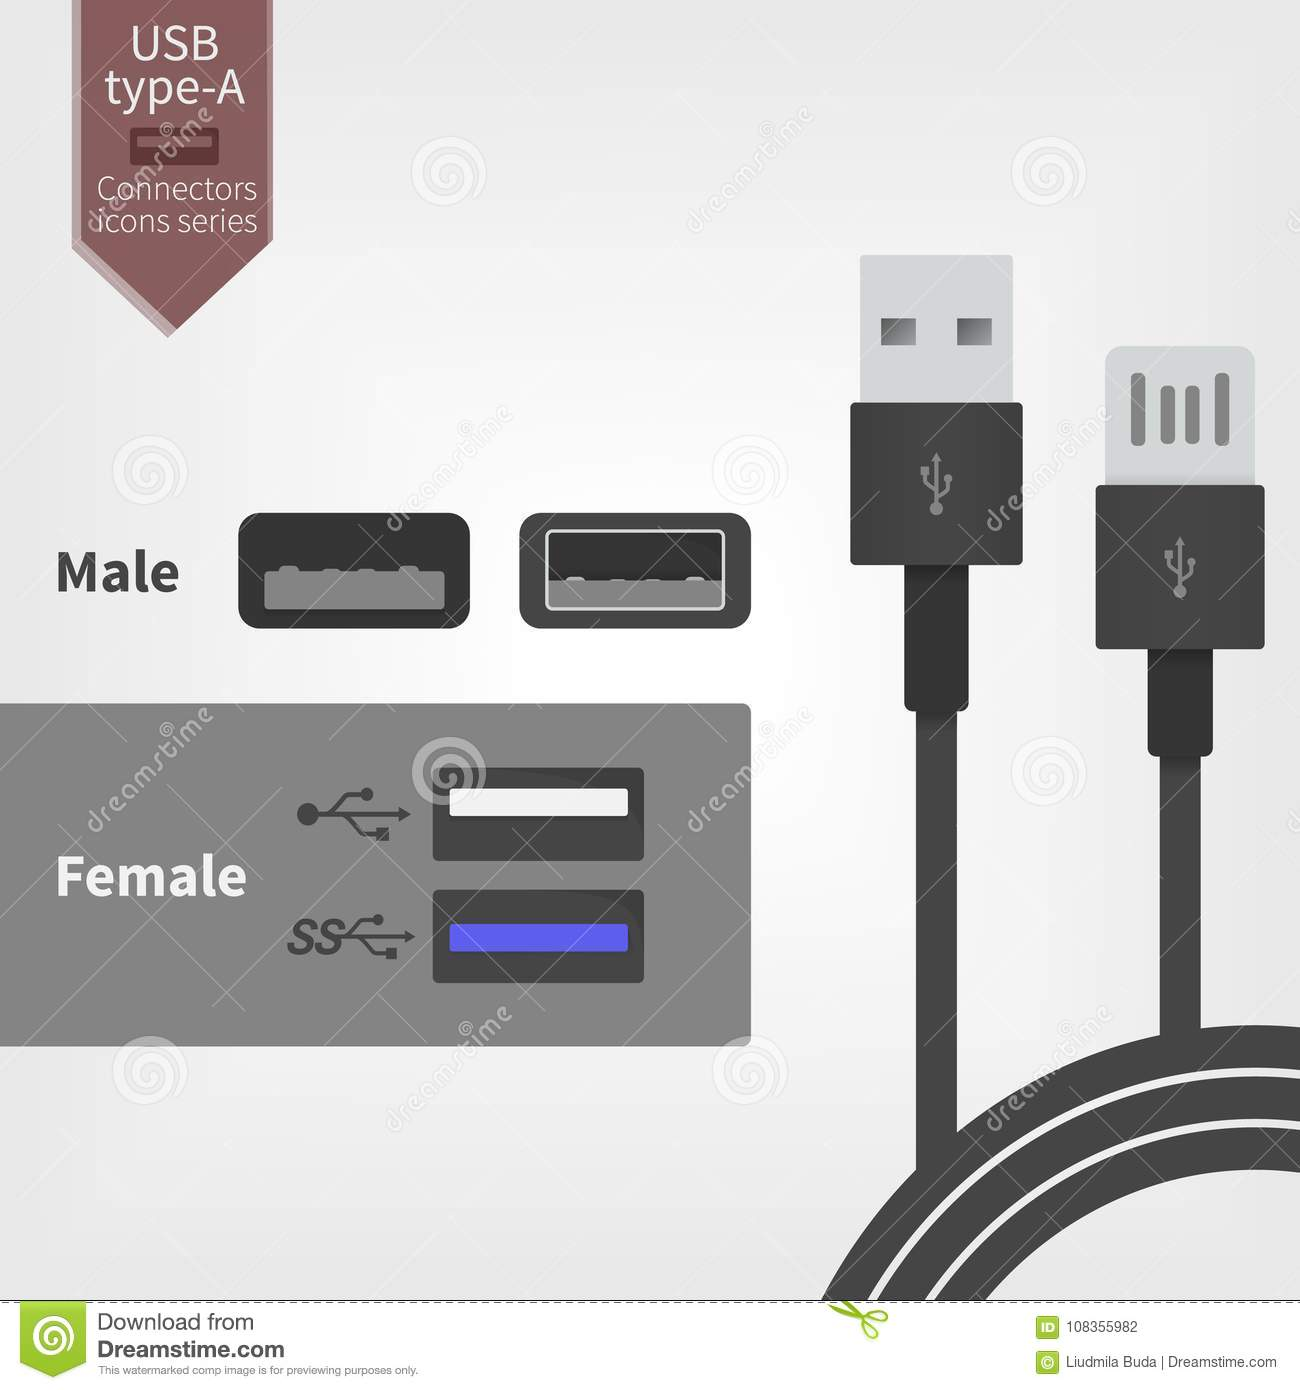 hight resolution of usb socket outlet and connector wires vector illustration in flat style male and female front view